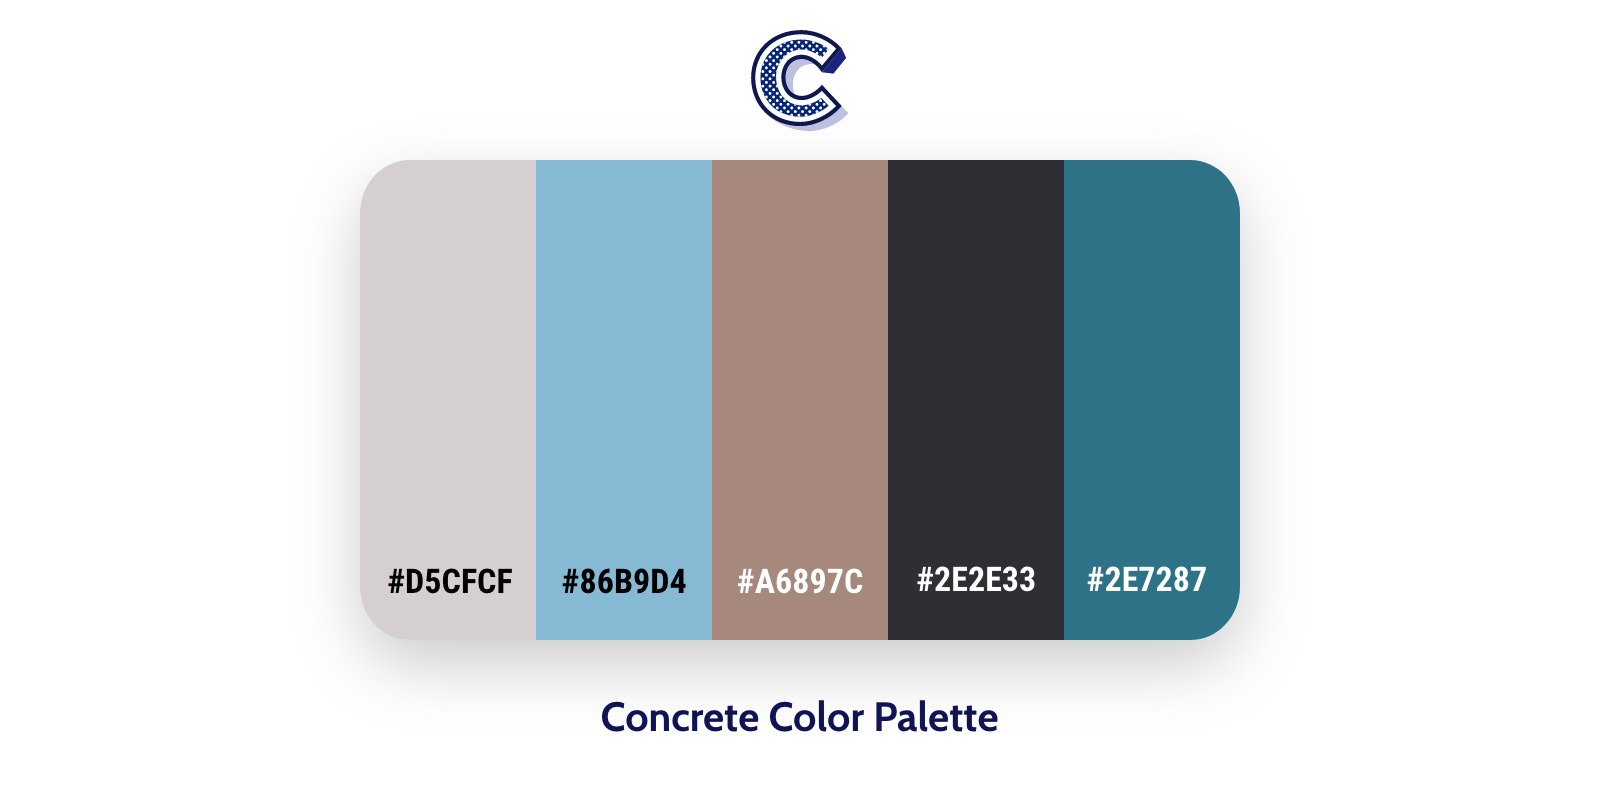 the featured image of concrete color palette